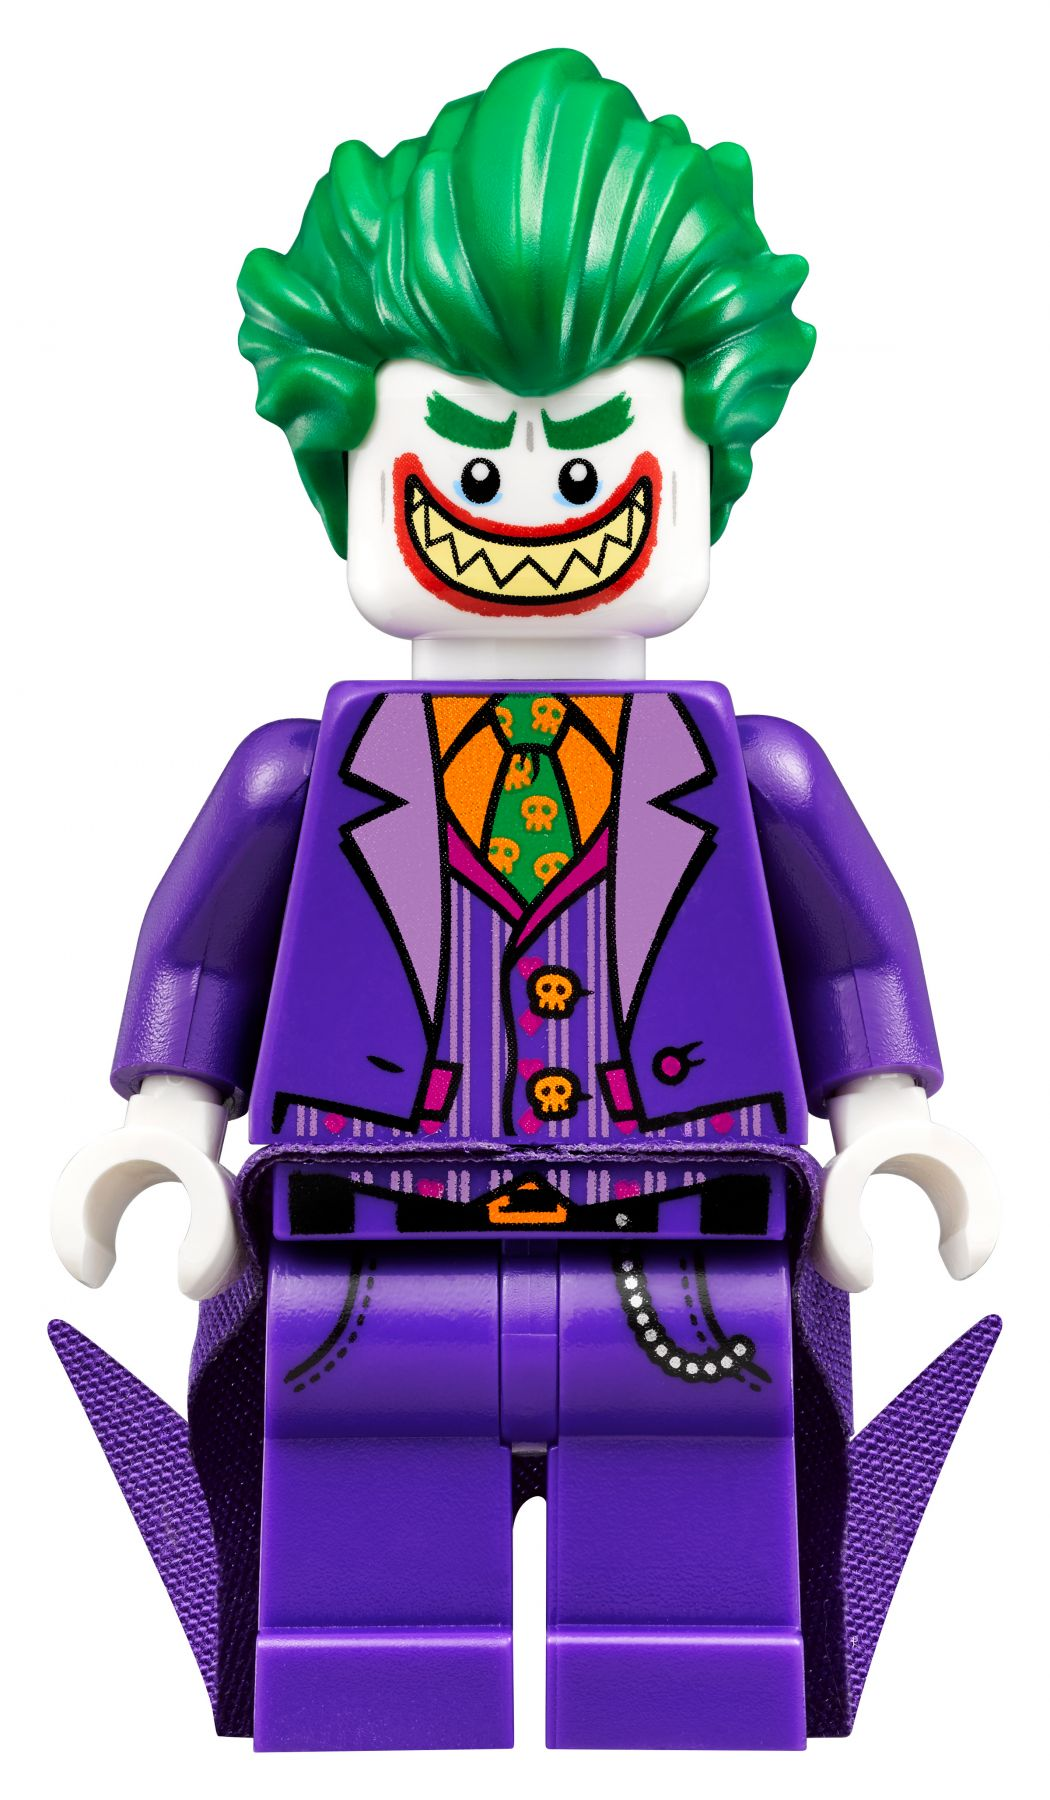 LEGO The LEGO Batman Movie 70900 Jokers Flucht mit den Ballons LEGO_70900_alt7.jpg